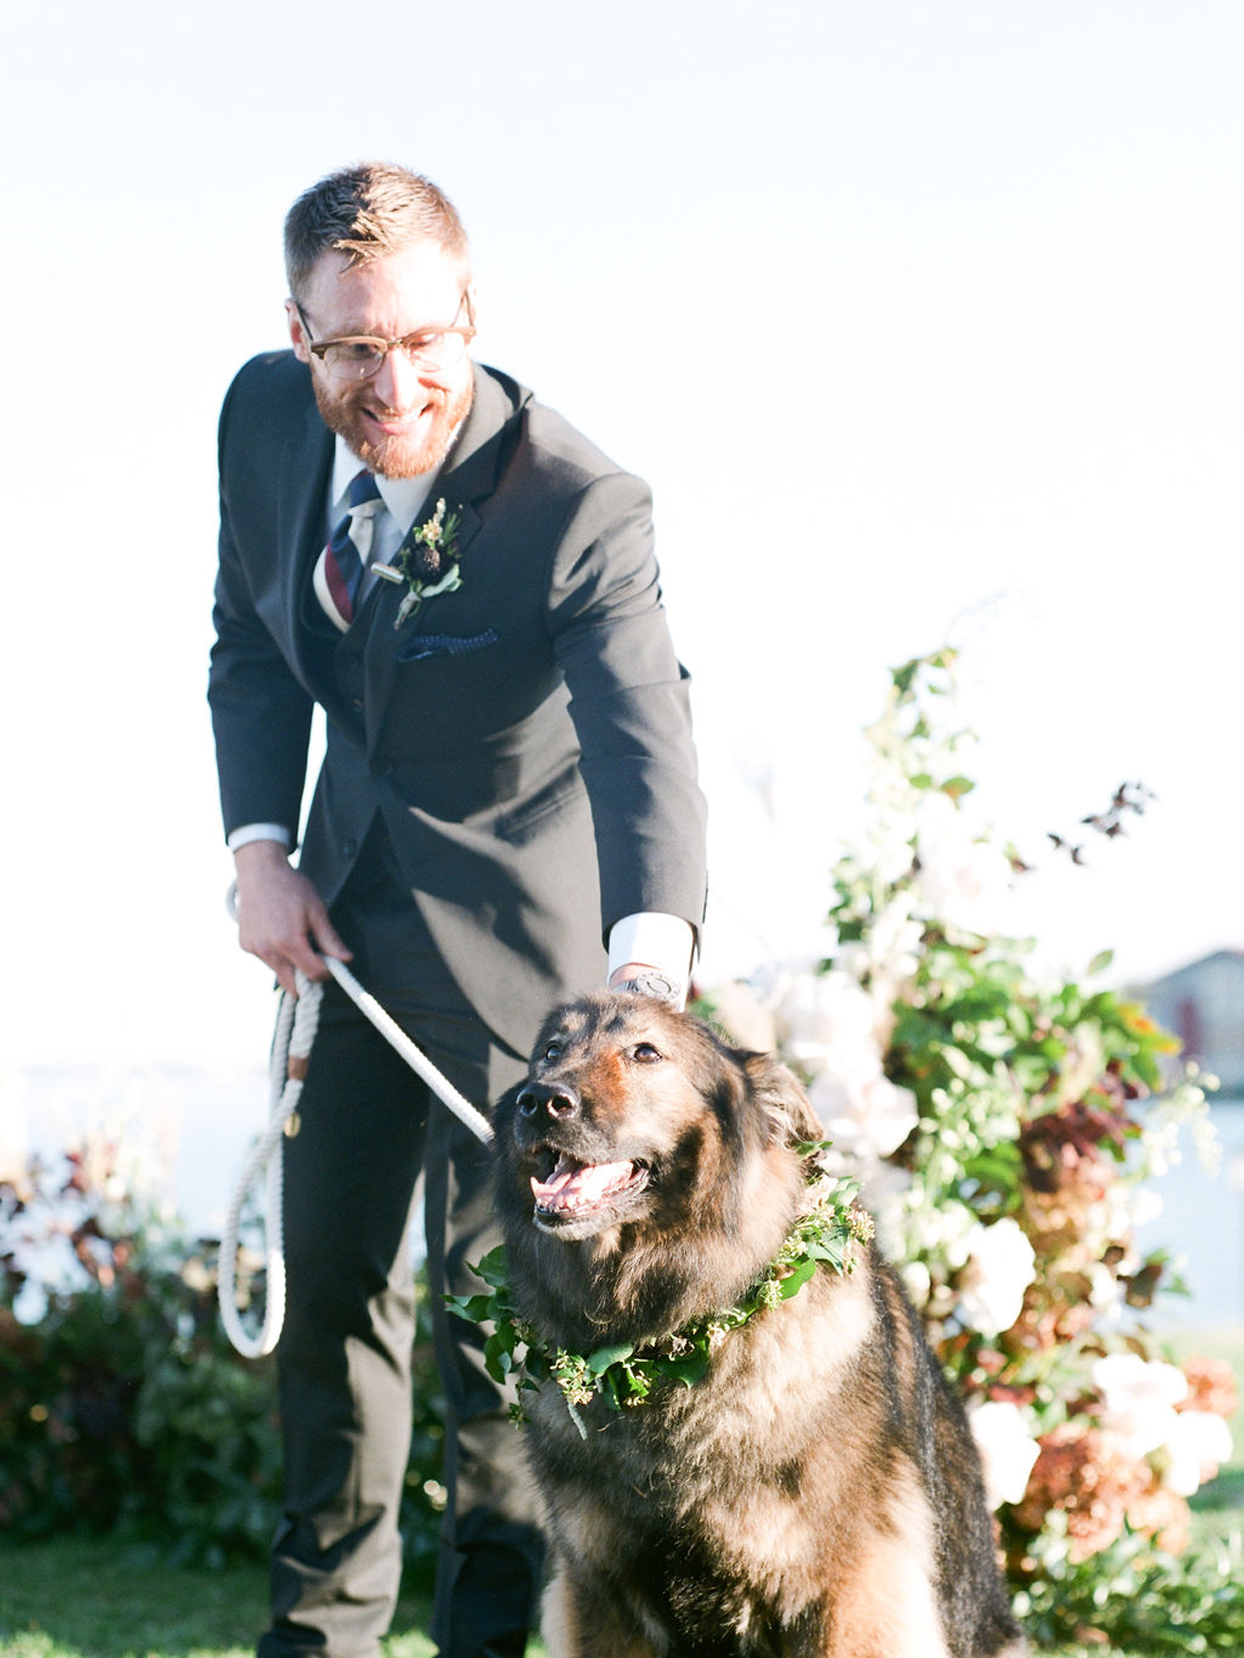 groom with dog wearing floral wreath